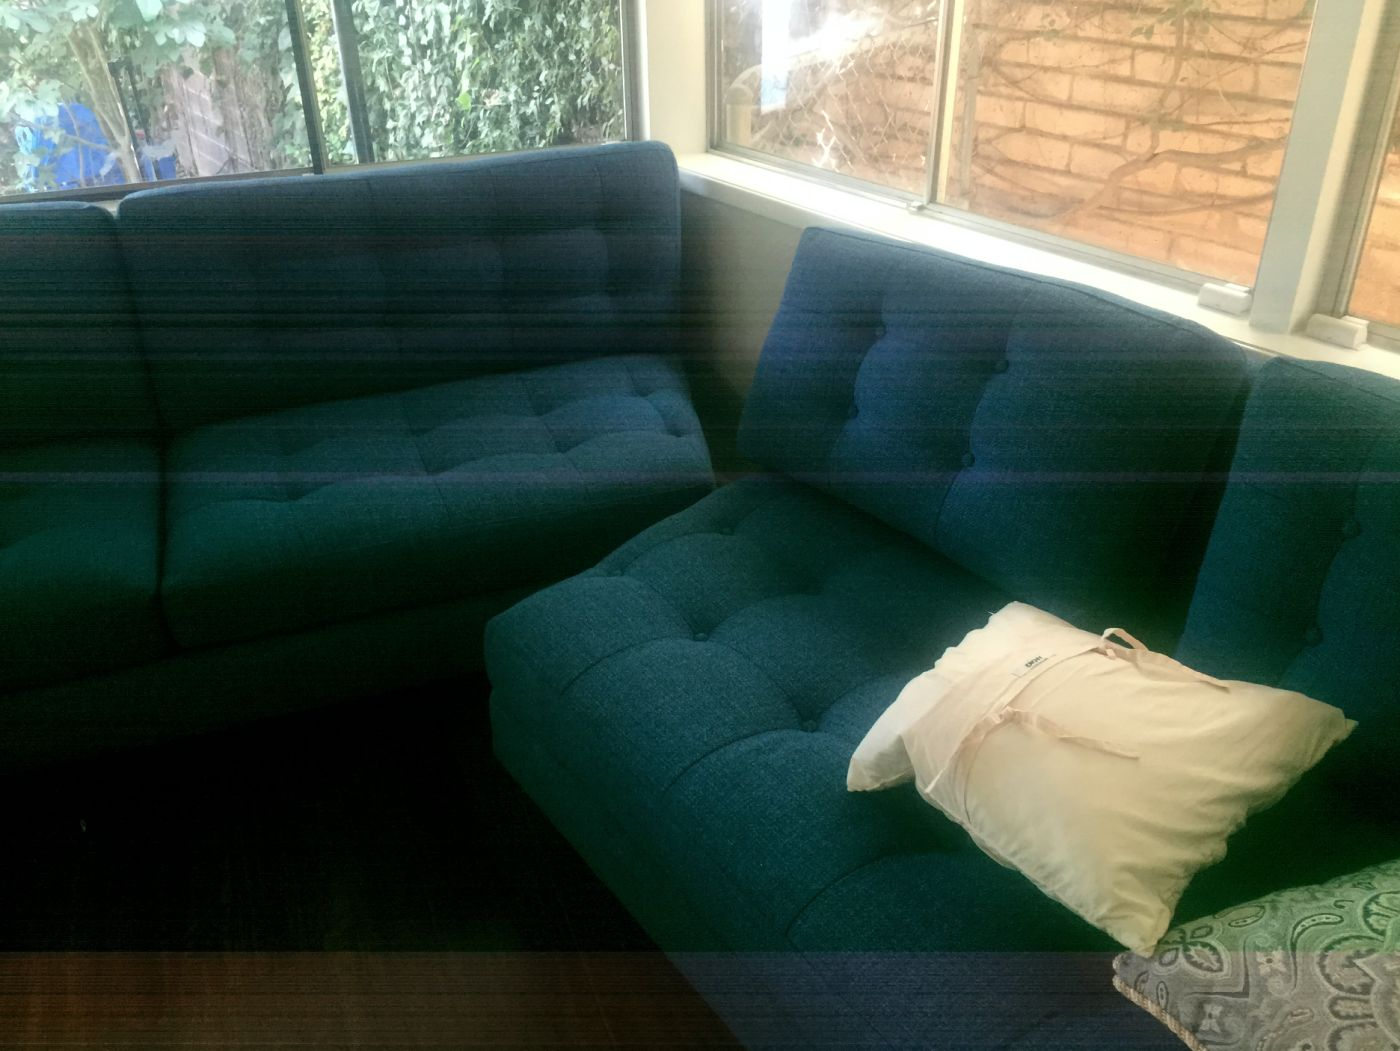 09-Couch-2.jpg